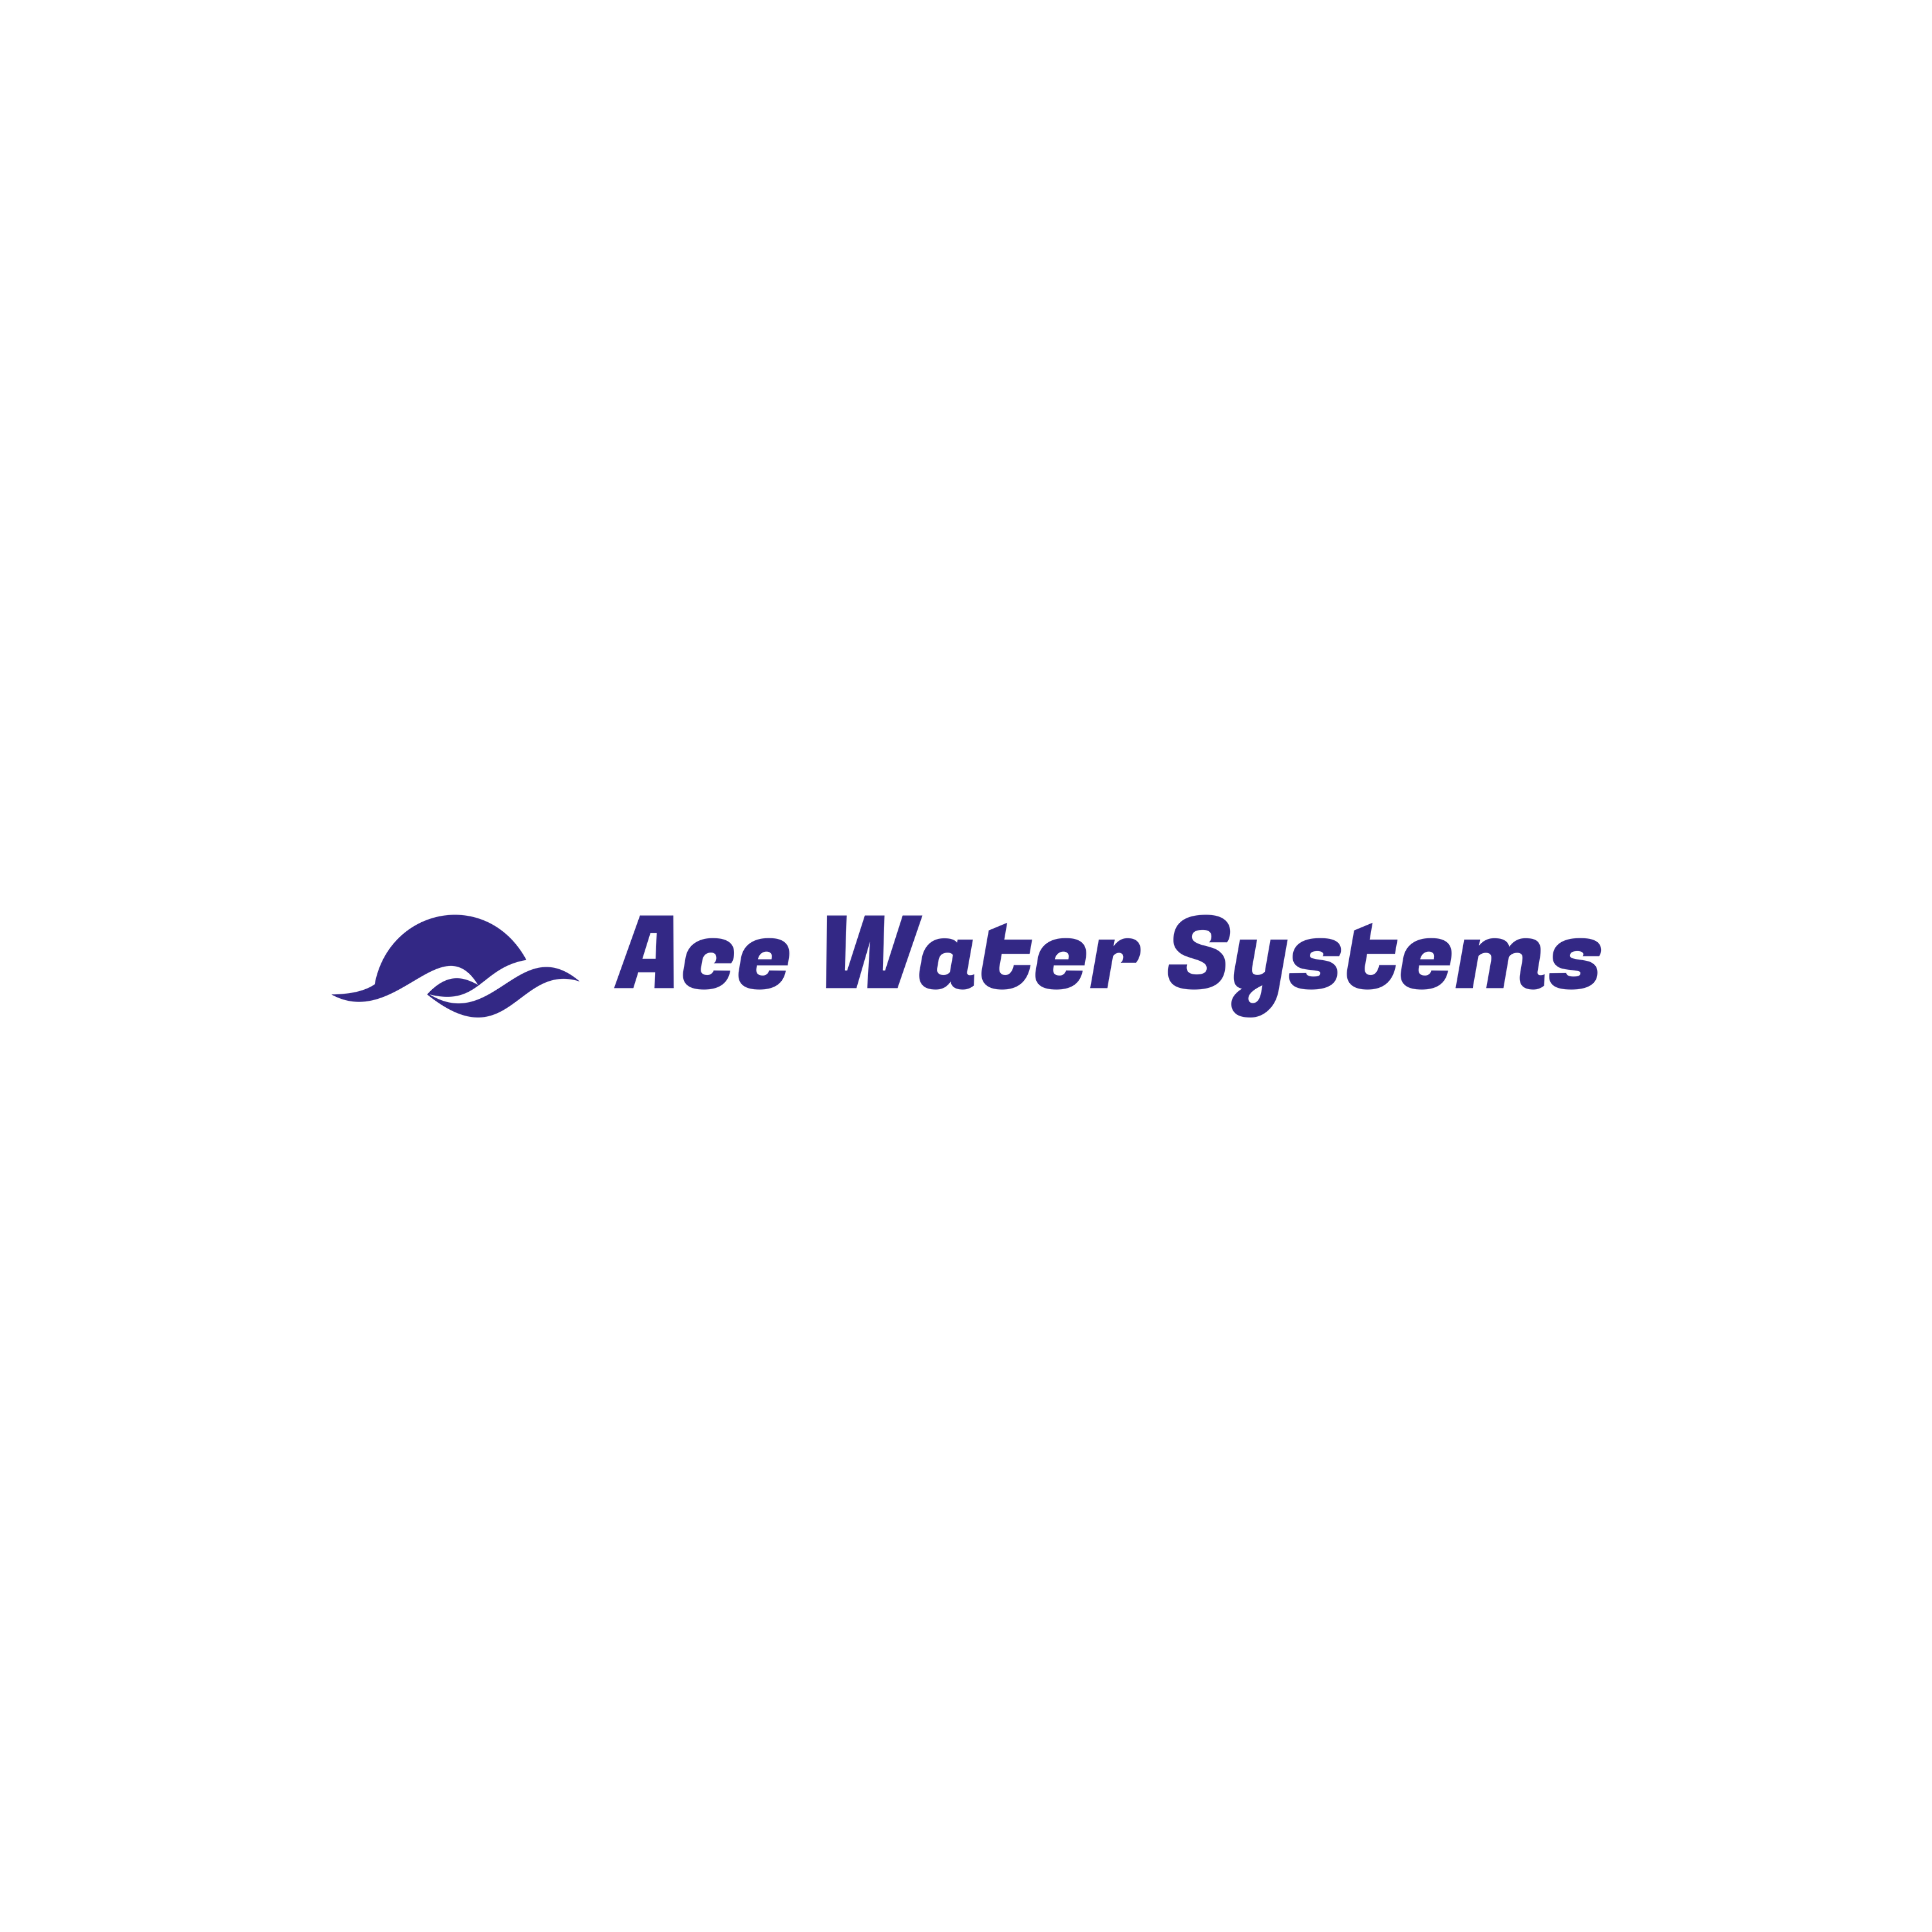 ace water systems